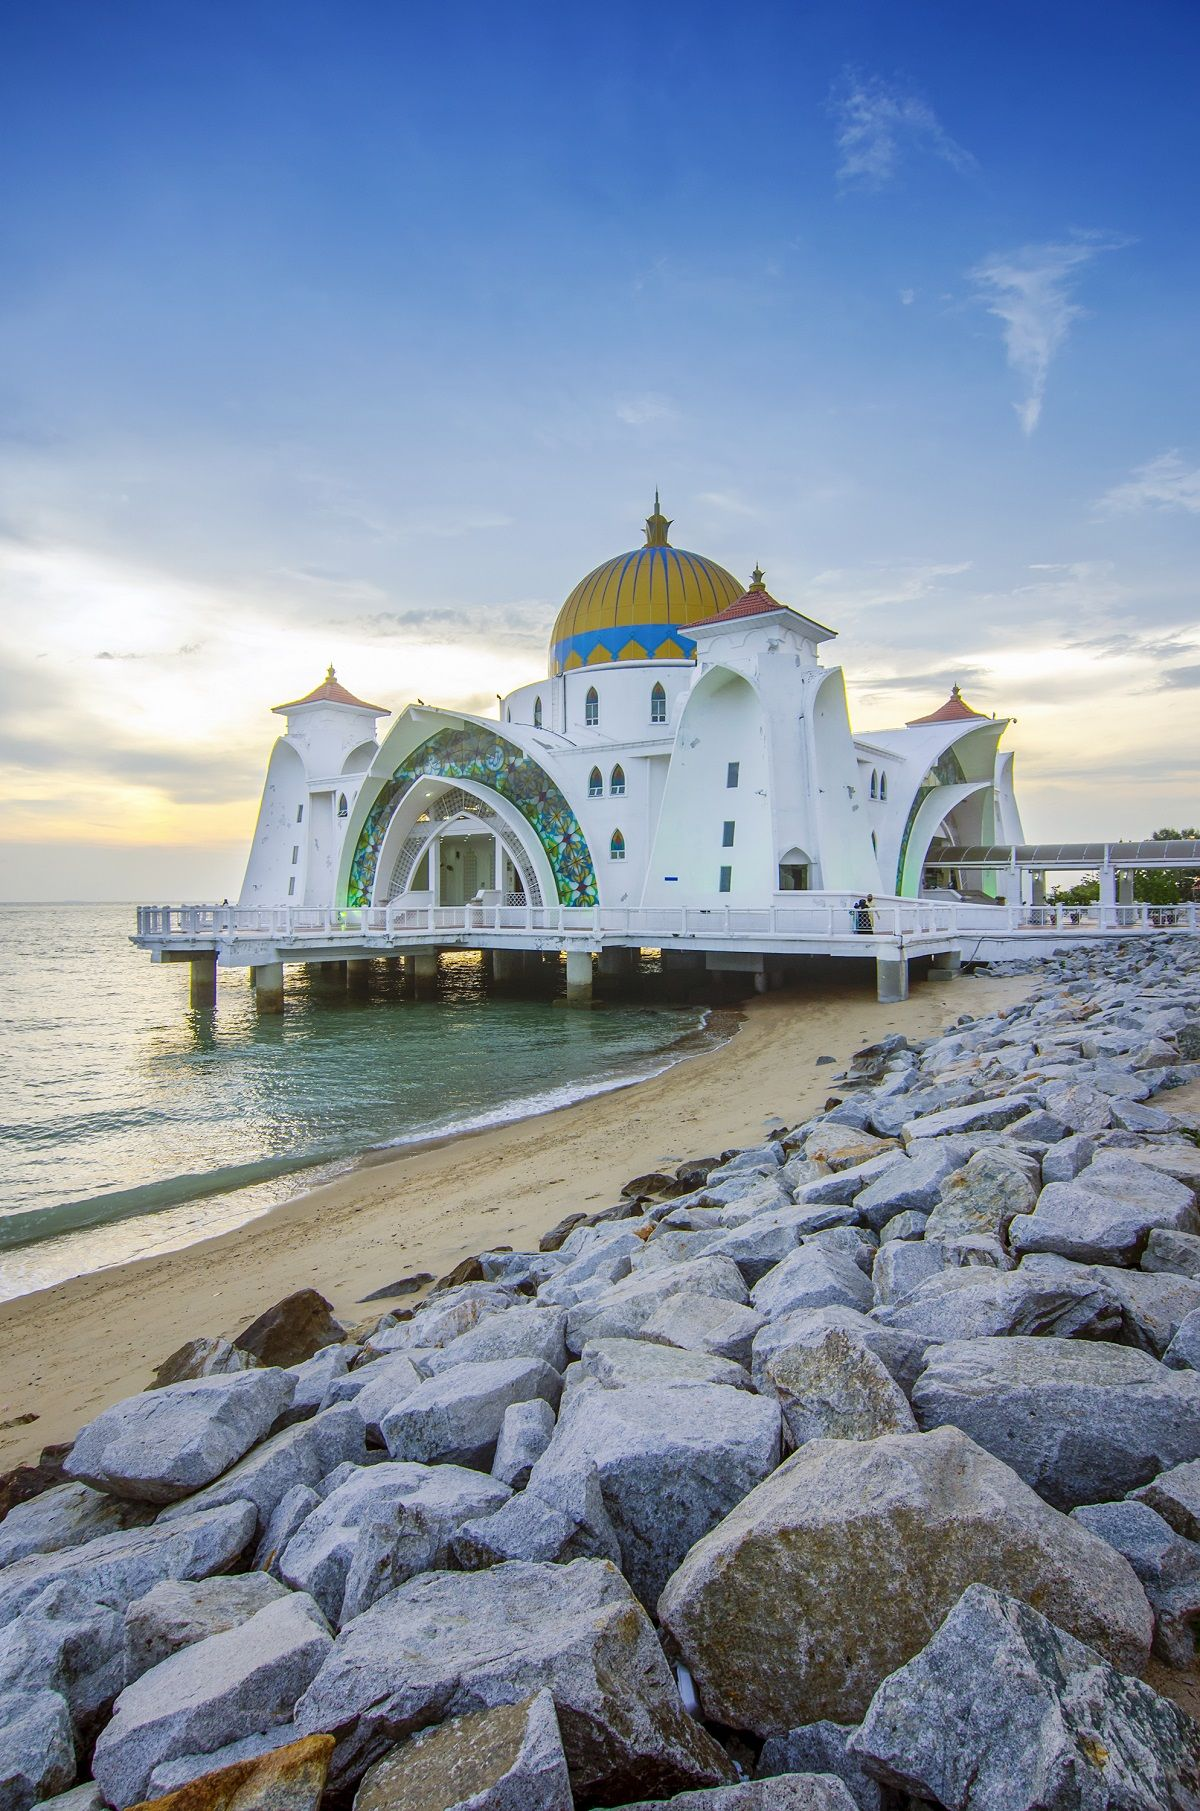 Tour The World Heritage Listed City Of Malacca On A Fantastic Day Trip From Singapore